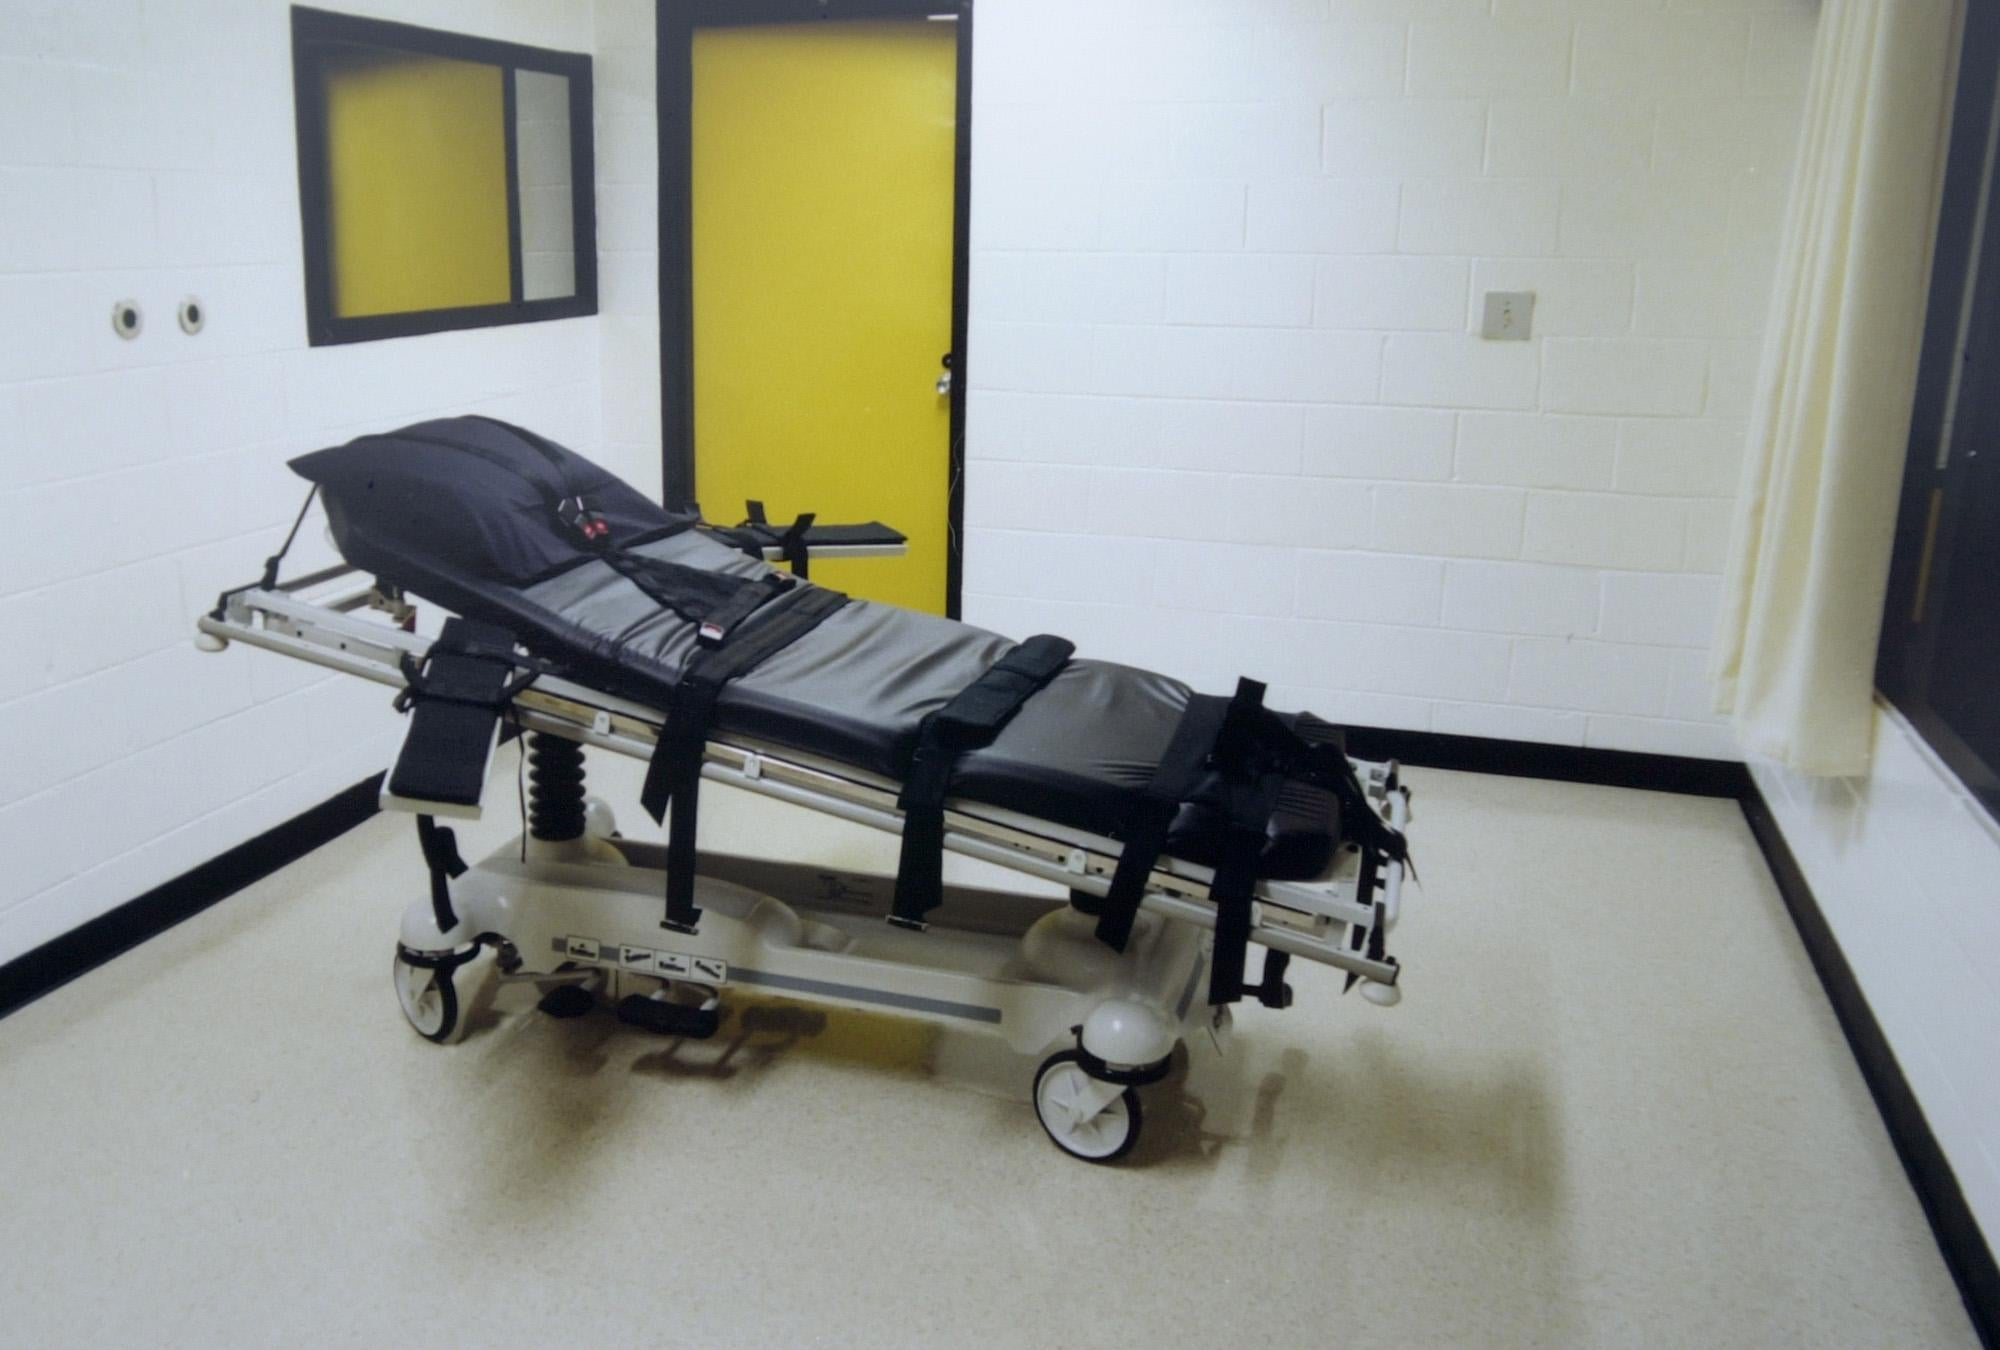 The death chamber at the Georgia Diagnostic Prison in Jackson, GA.